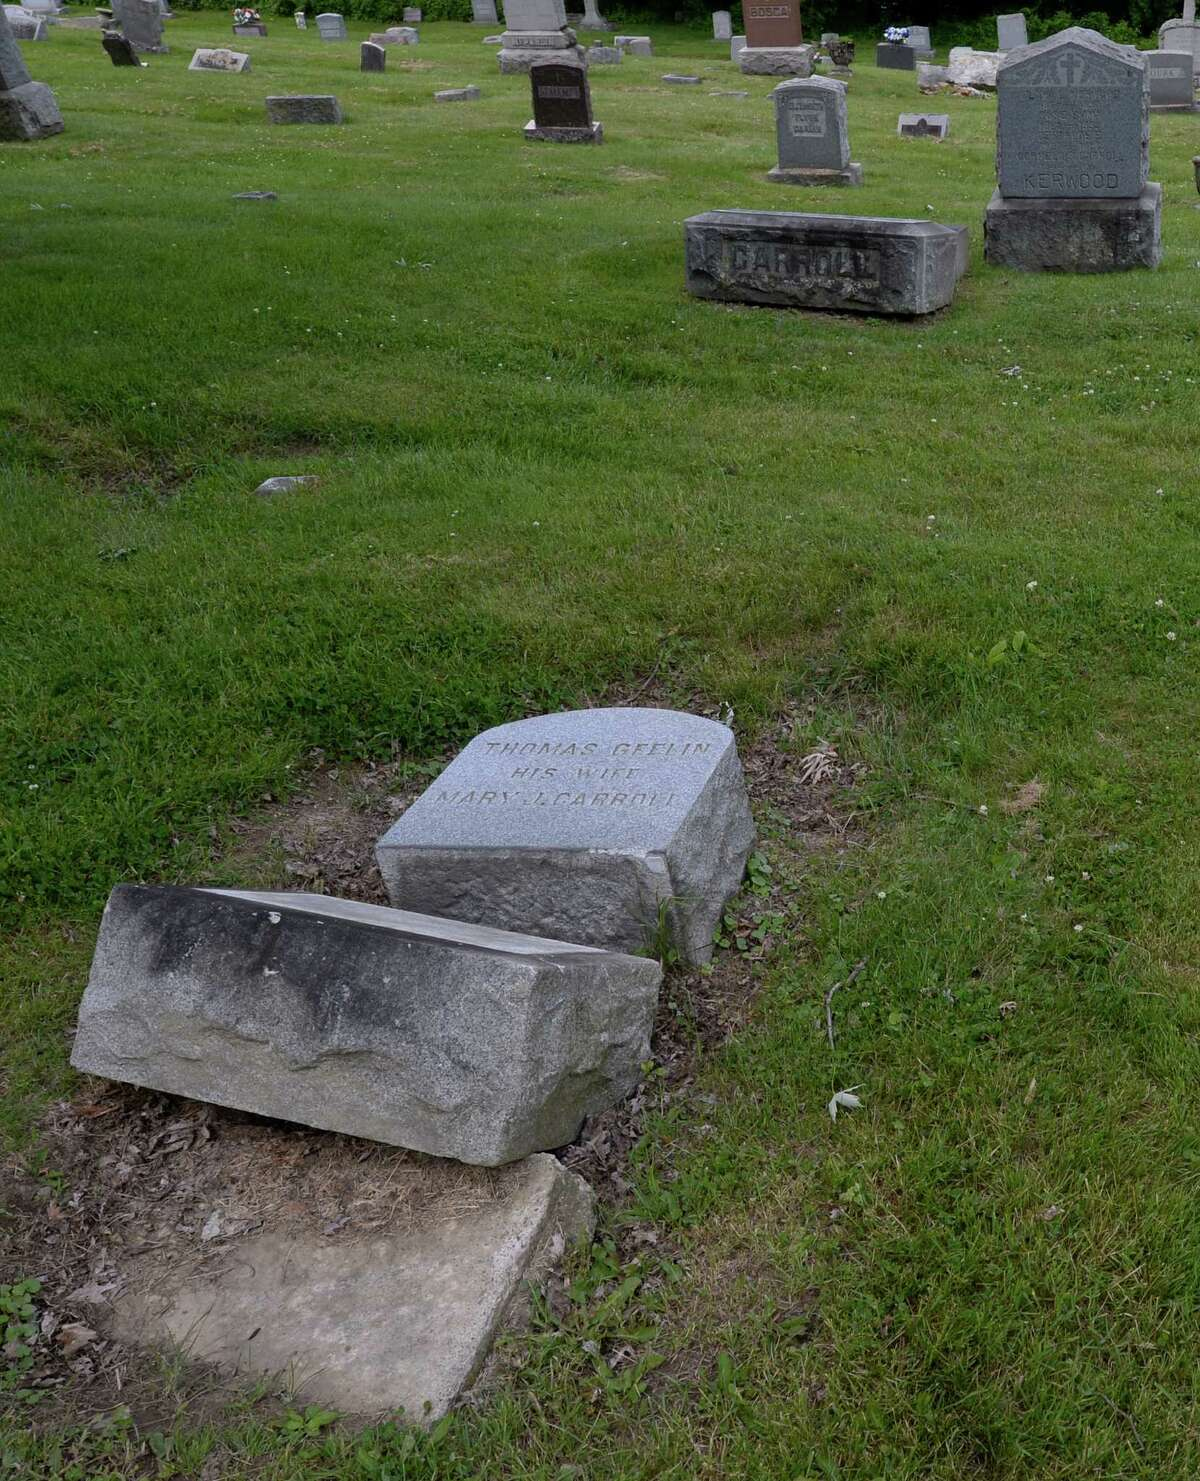 Headstones rest on the ground near their sites at the St. John's Cemetery Thursday afternoon June 19, 2014 in Troy, N.Y. (Skip Dickstein / Times Union)